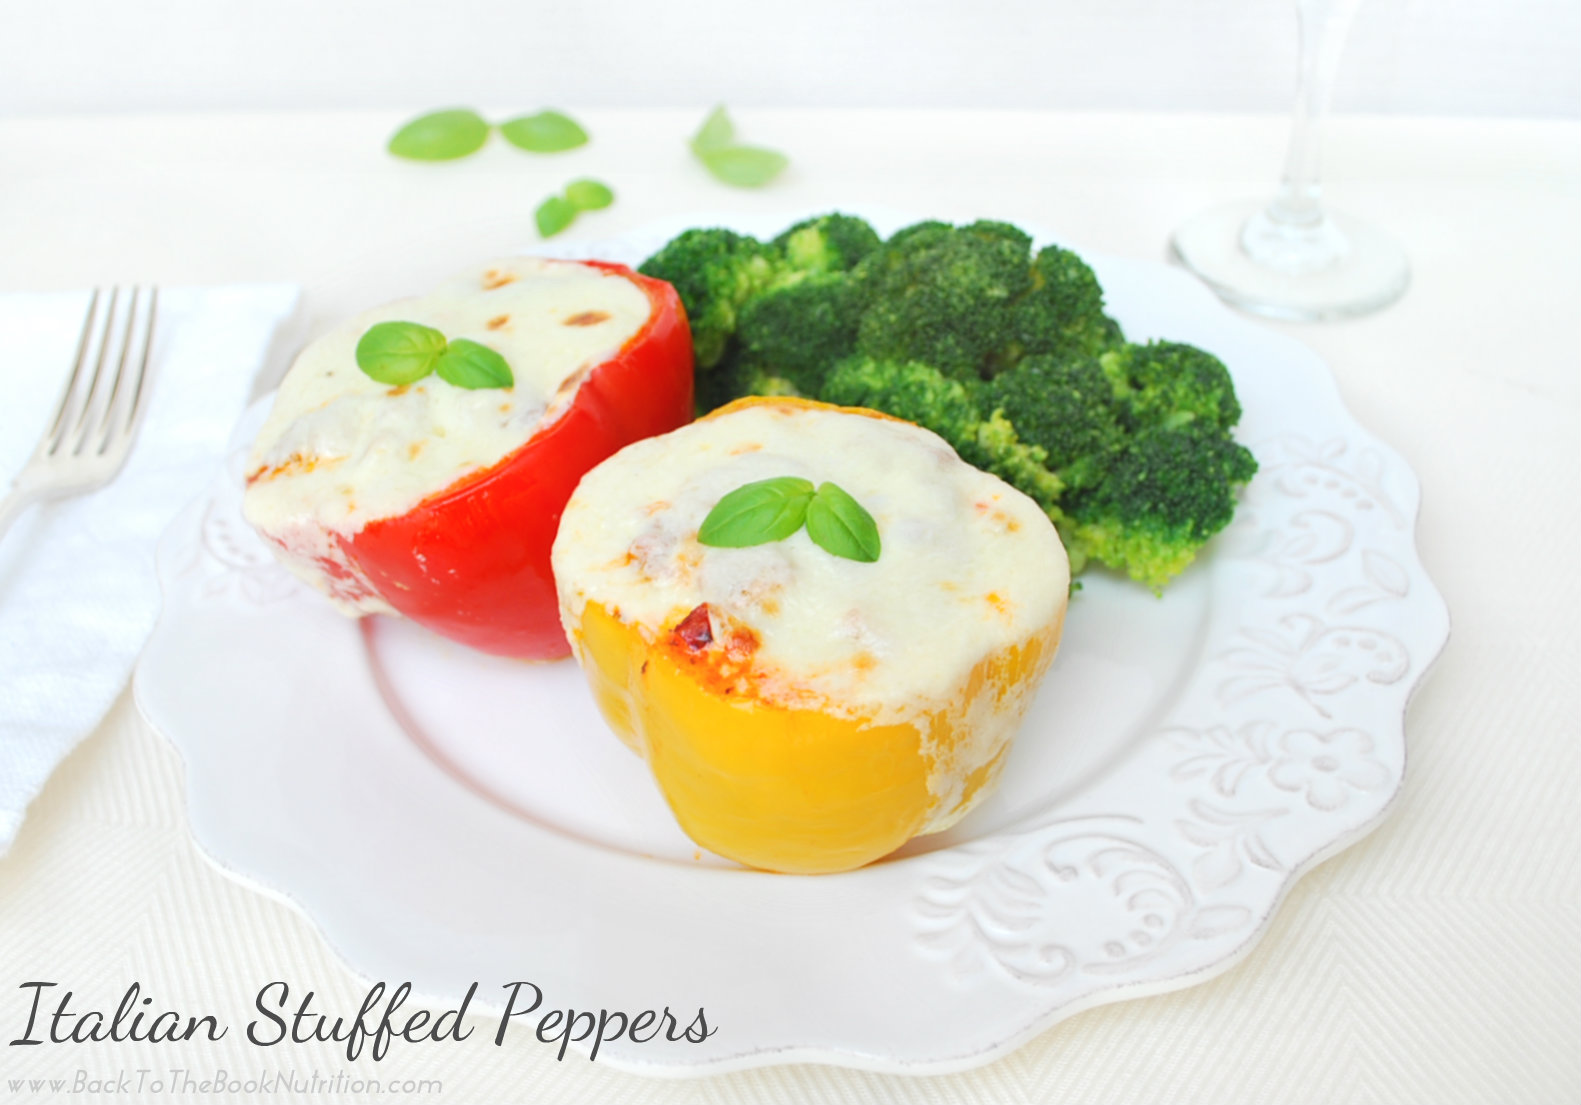 Italian Stuffed Peppers on Plate